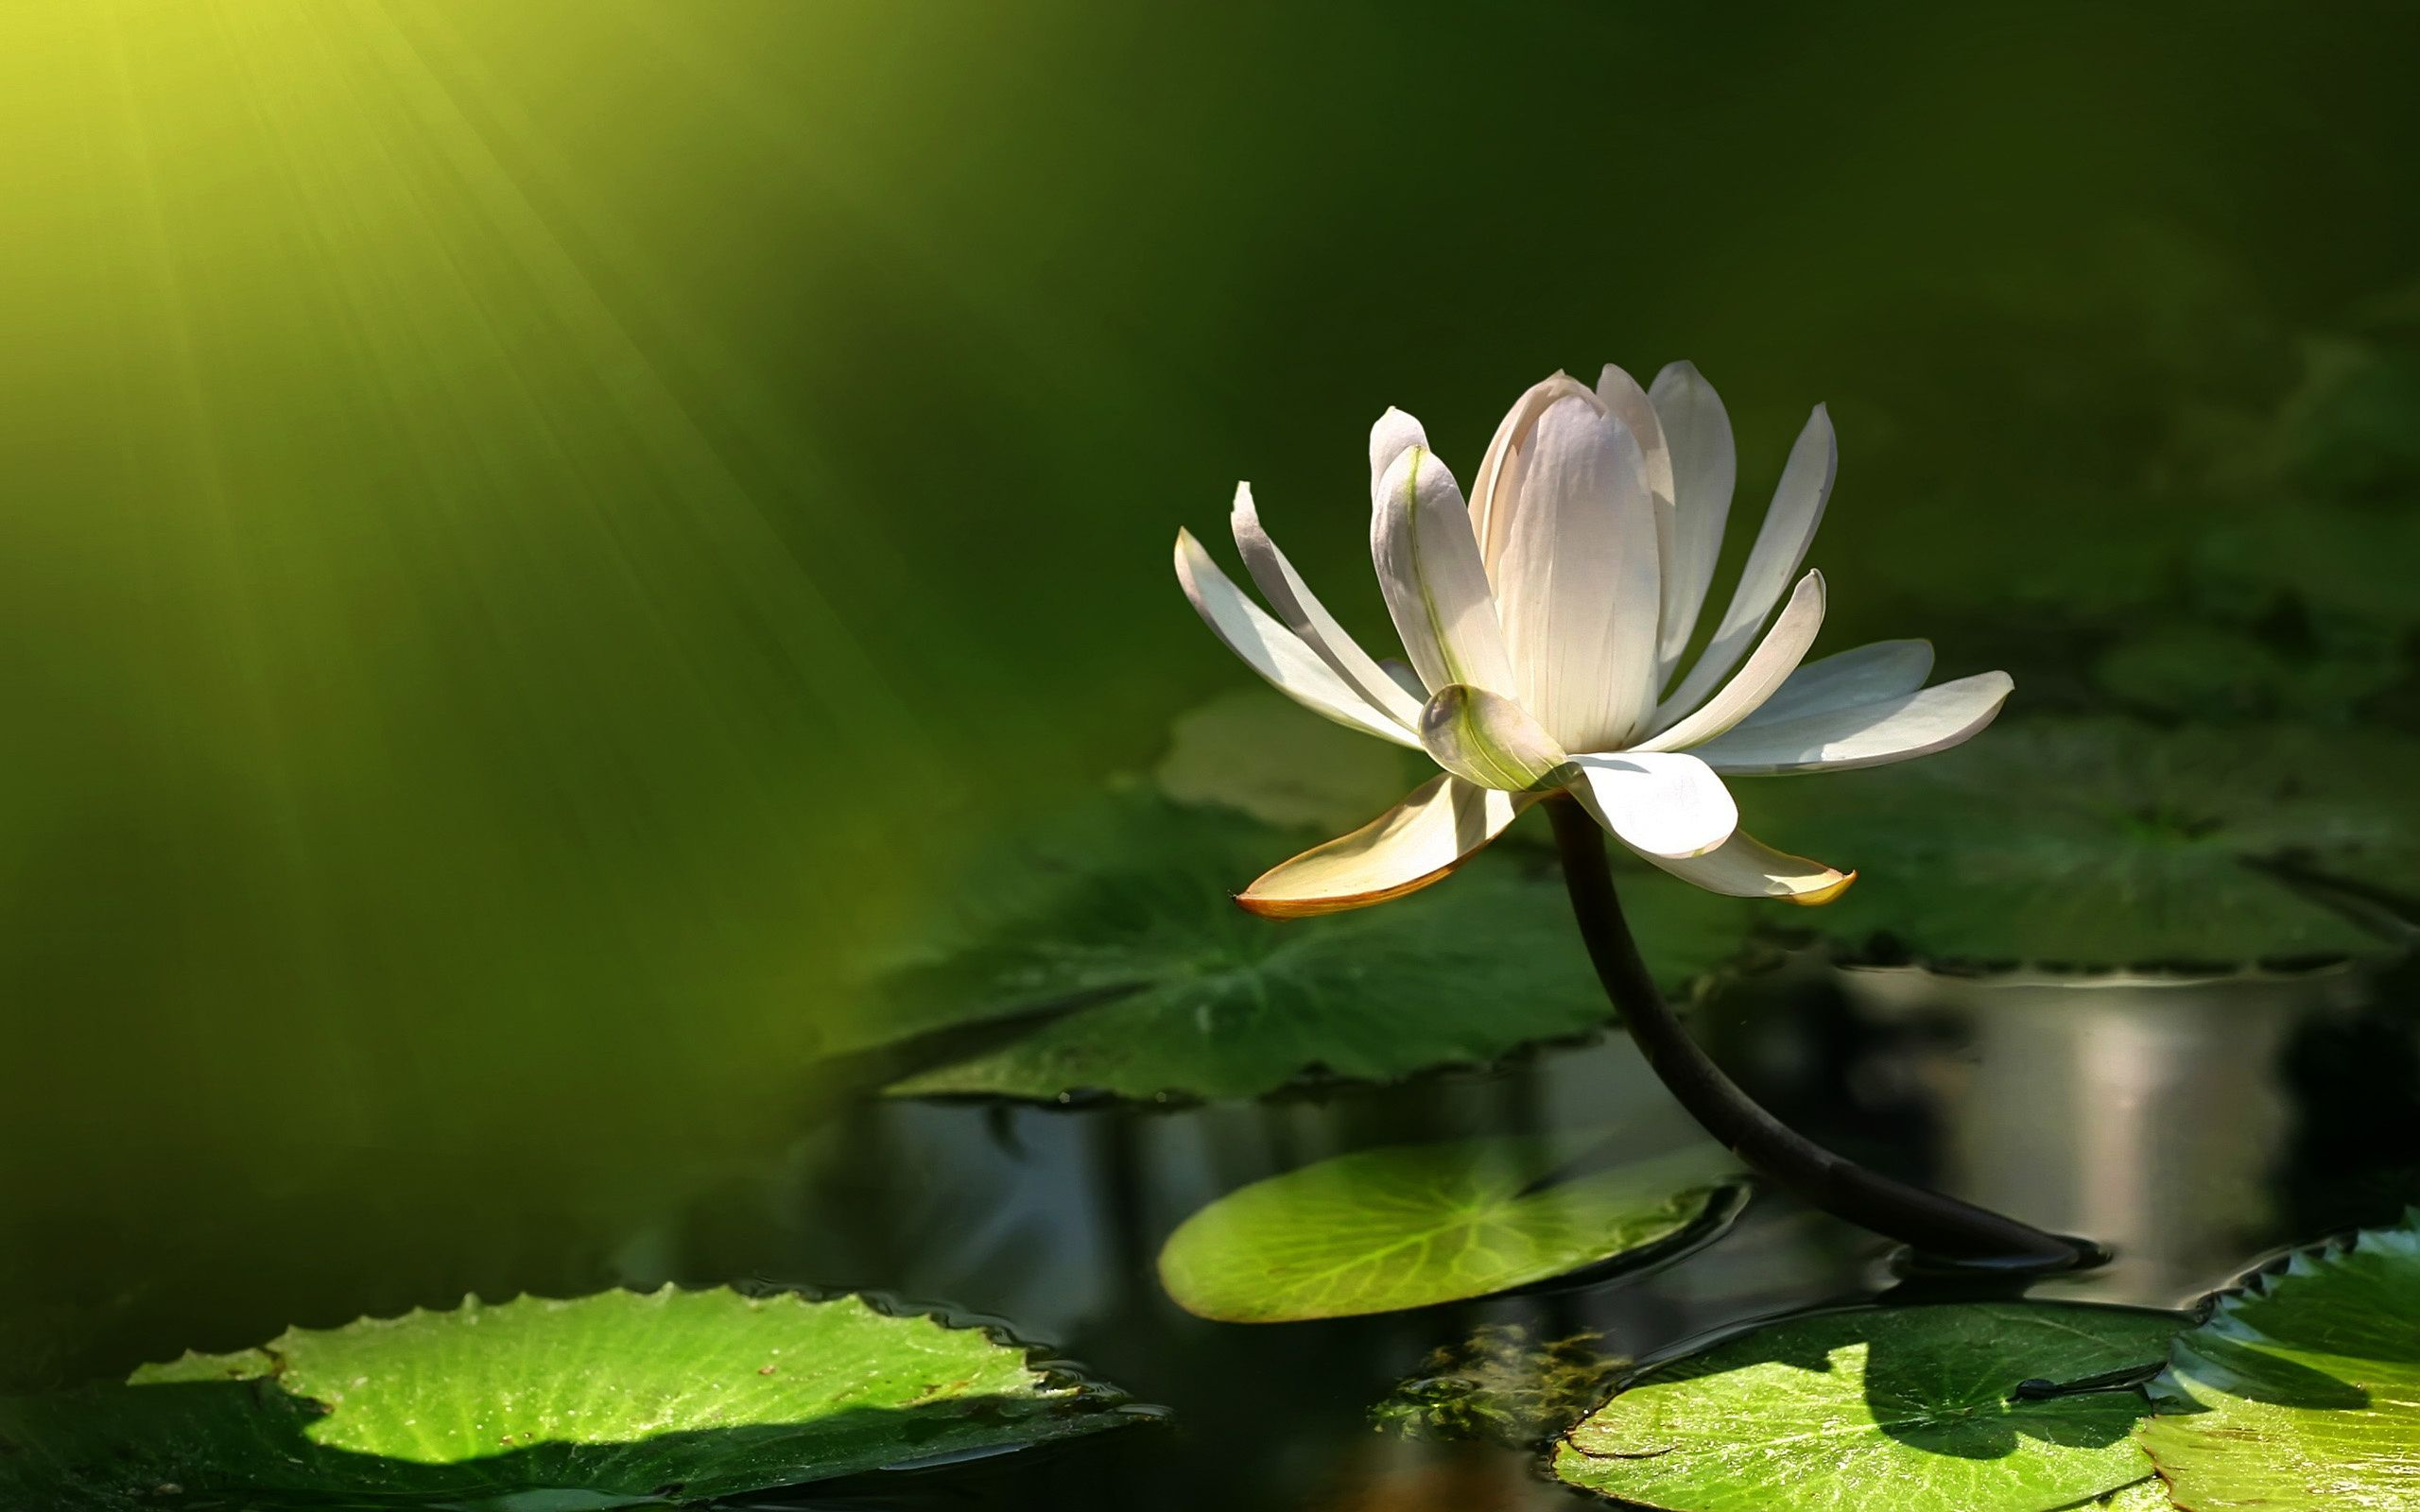 Lotus Flower Lotus Wallpaper Flower Desktop 5 Painting Subjects